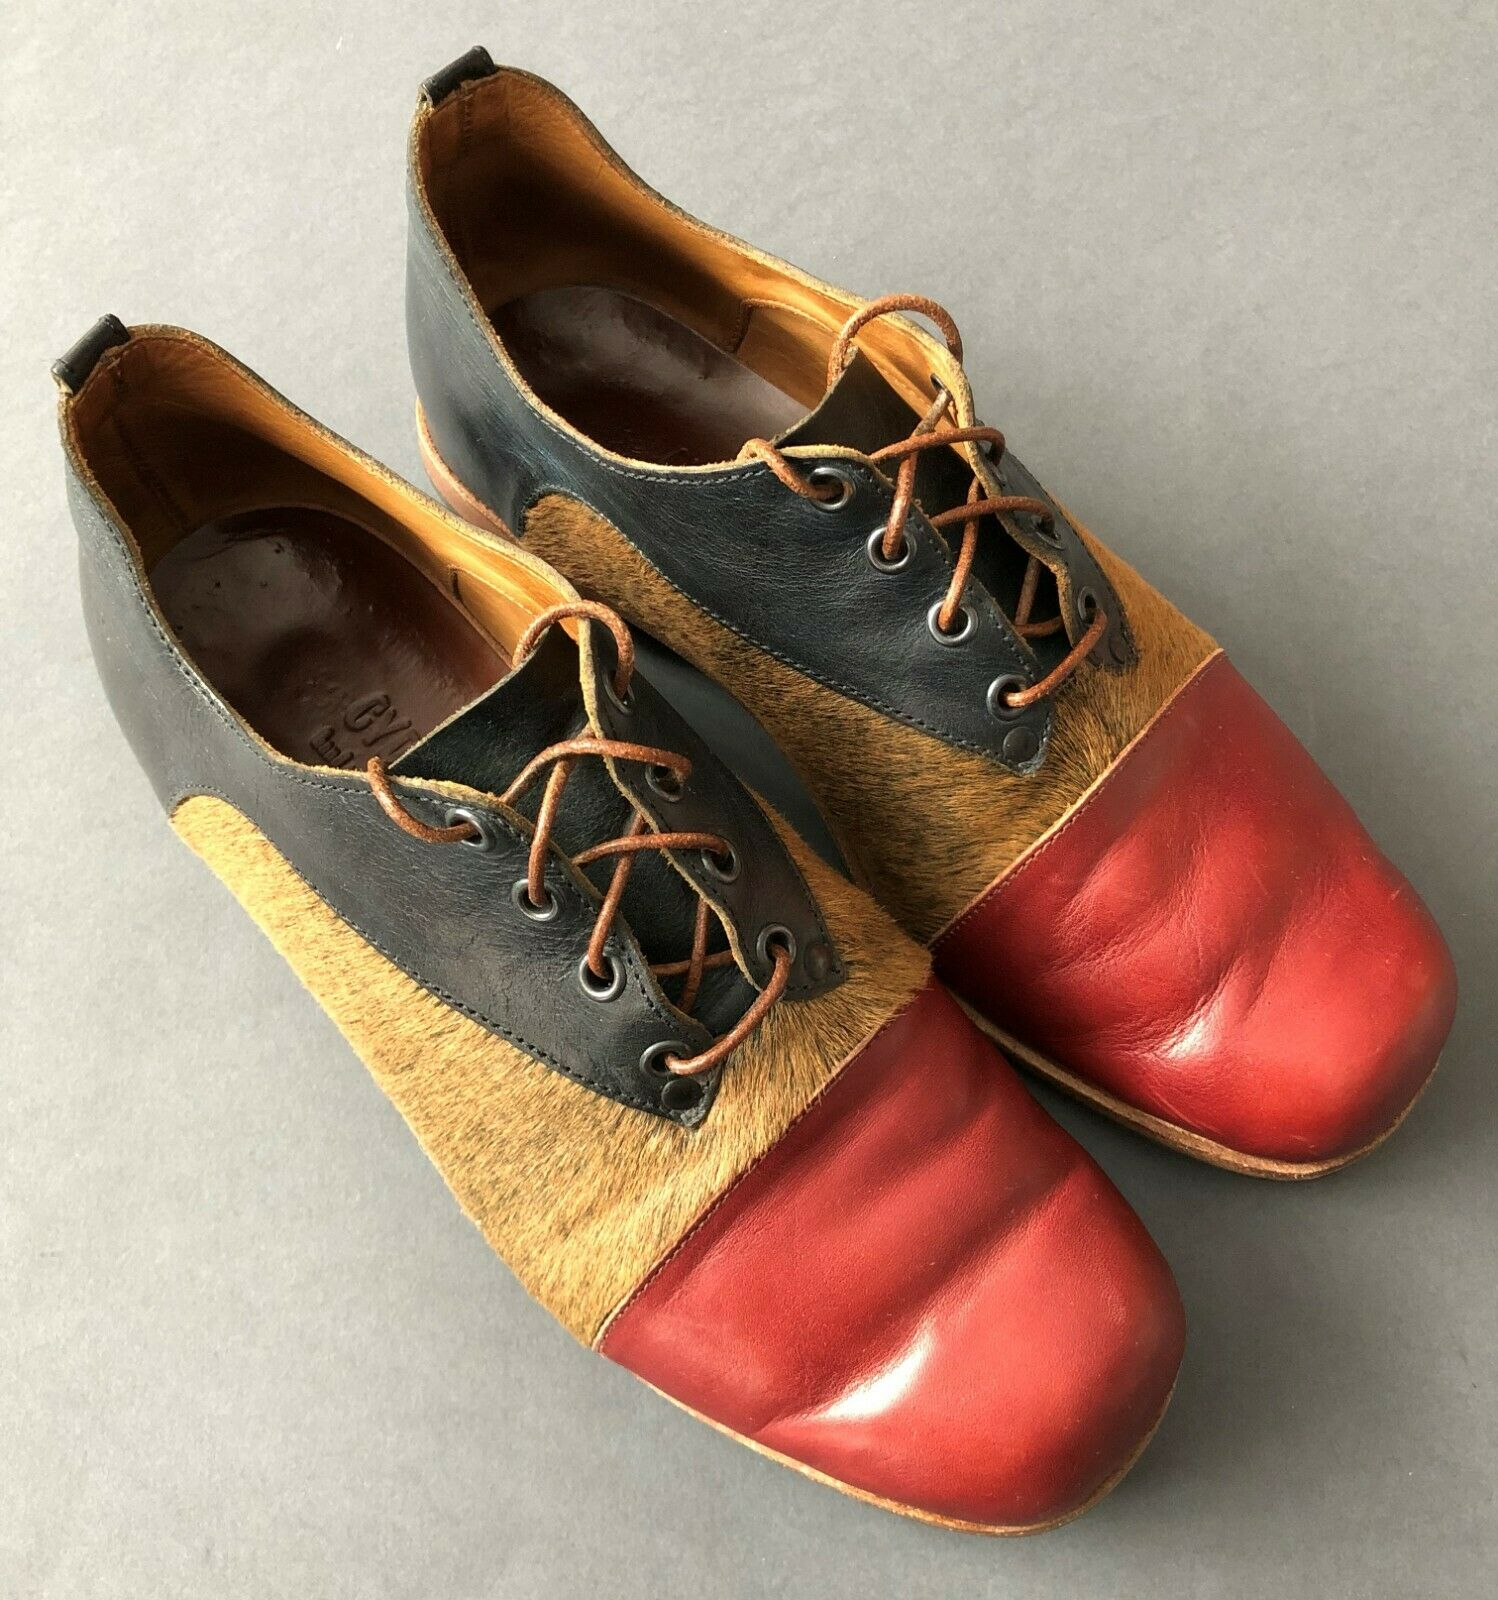 RARE CYDWOQ Men's Leather Shoes Size 42 1/2 Hand Made in USA